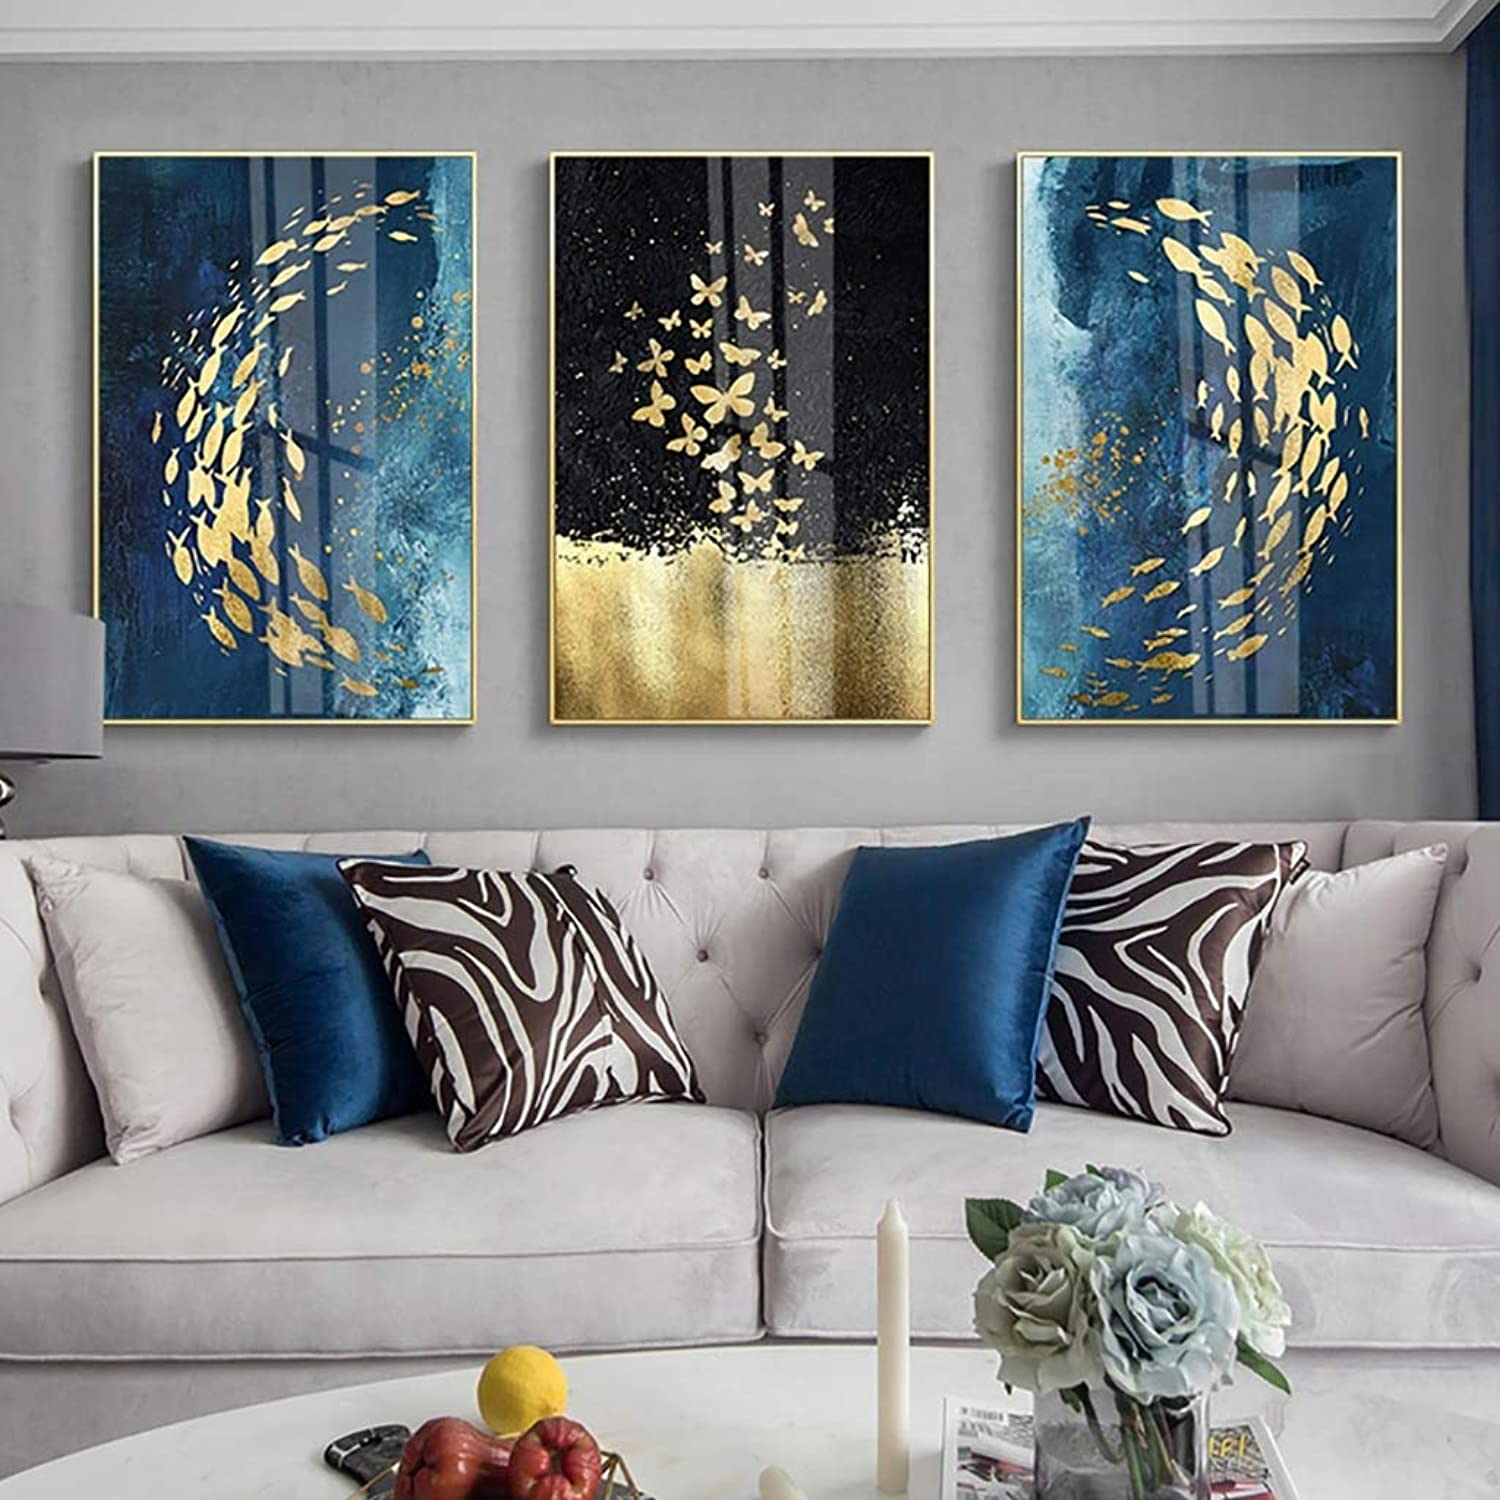 WENJUN Wall Art Picture Art On Canvas Fish Digital Painting Canvas Wall Art Artwork For Home Decoration Wall Decor,3Piece,3 colors,4 Sizes ( color   B , Size   4060CM )